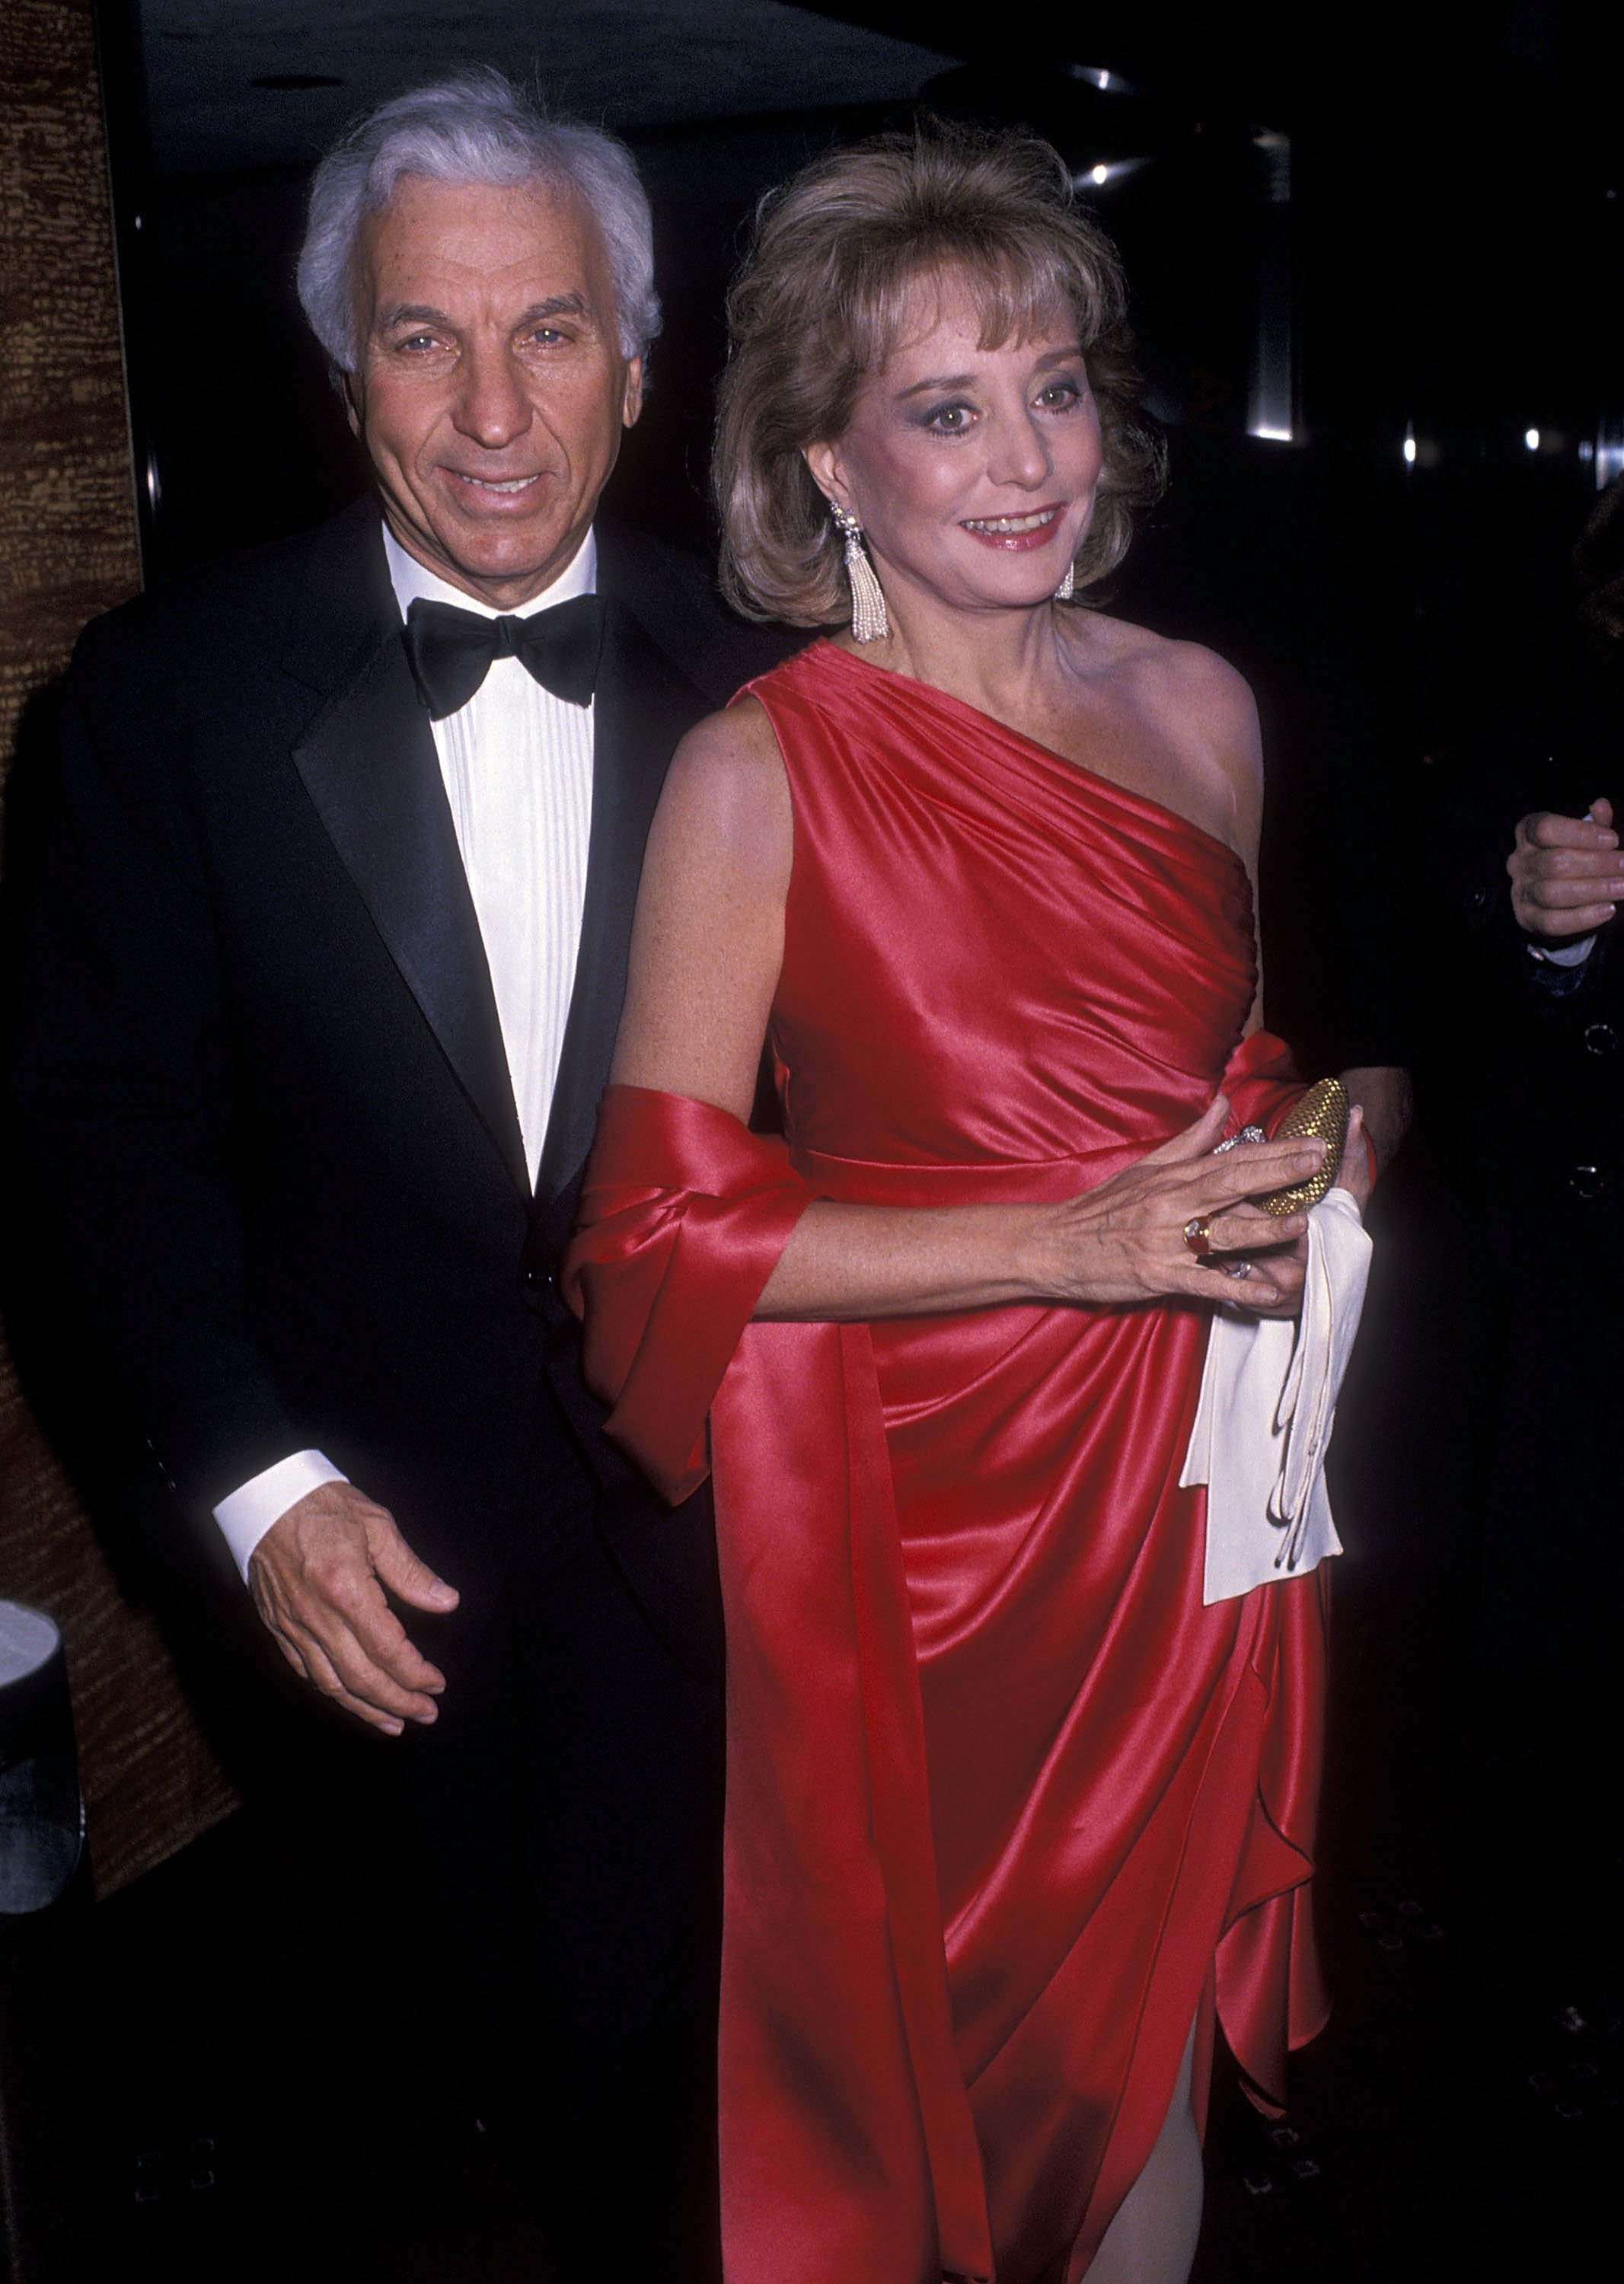 Barbara Walters and Merv Adelson attend the American Museum of the Moving Image Honors Sidney Poitier on February 28, 1989 at the Waldorf-Astoria Hotel in New York City. | Photo: GettyImages